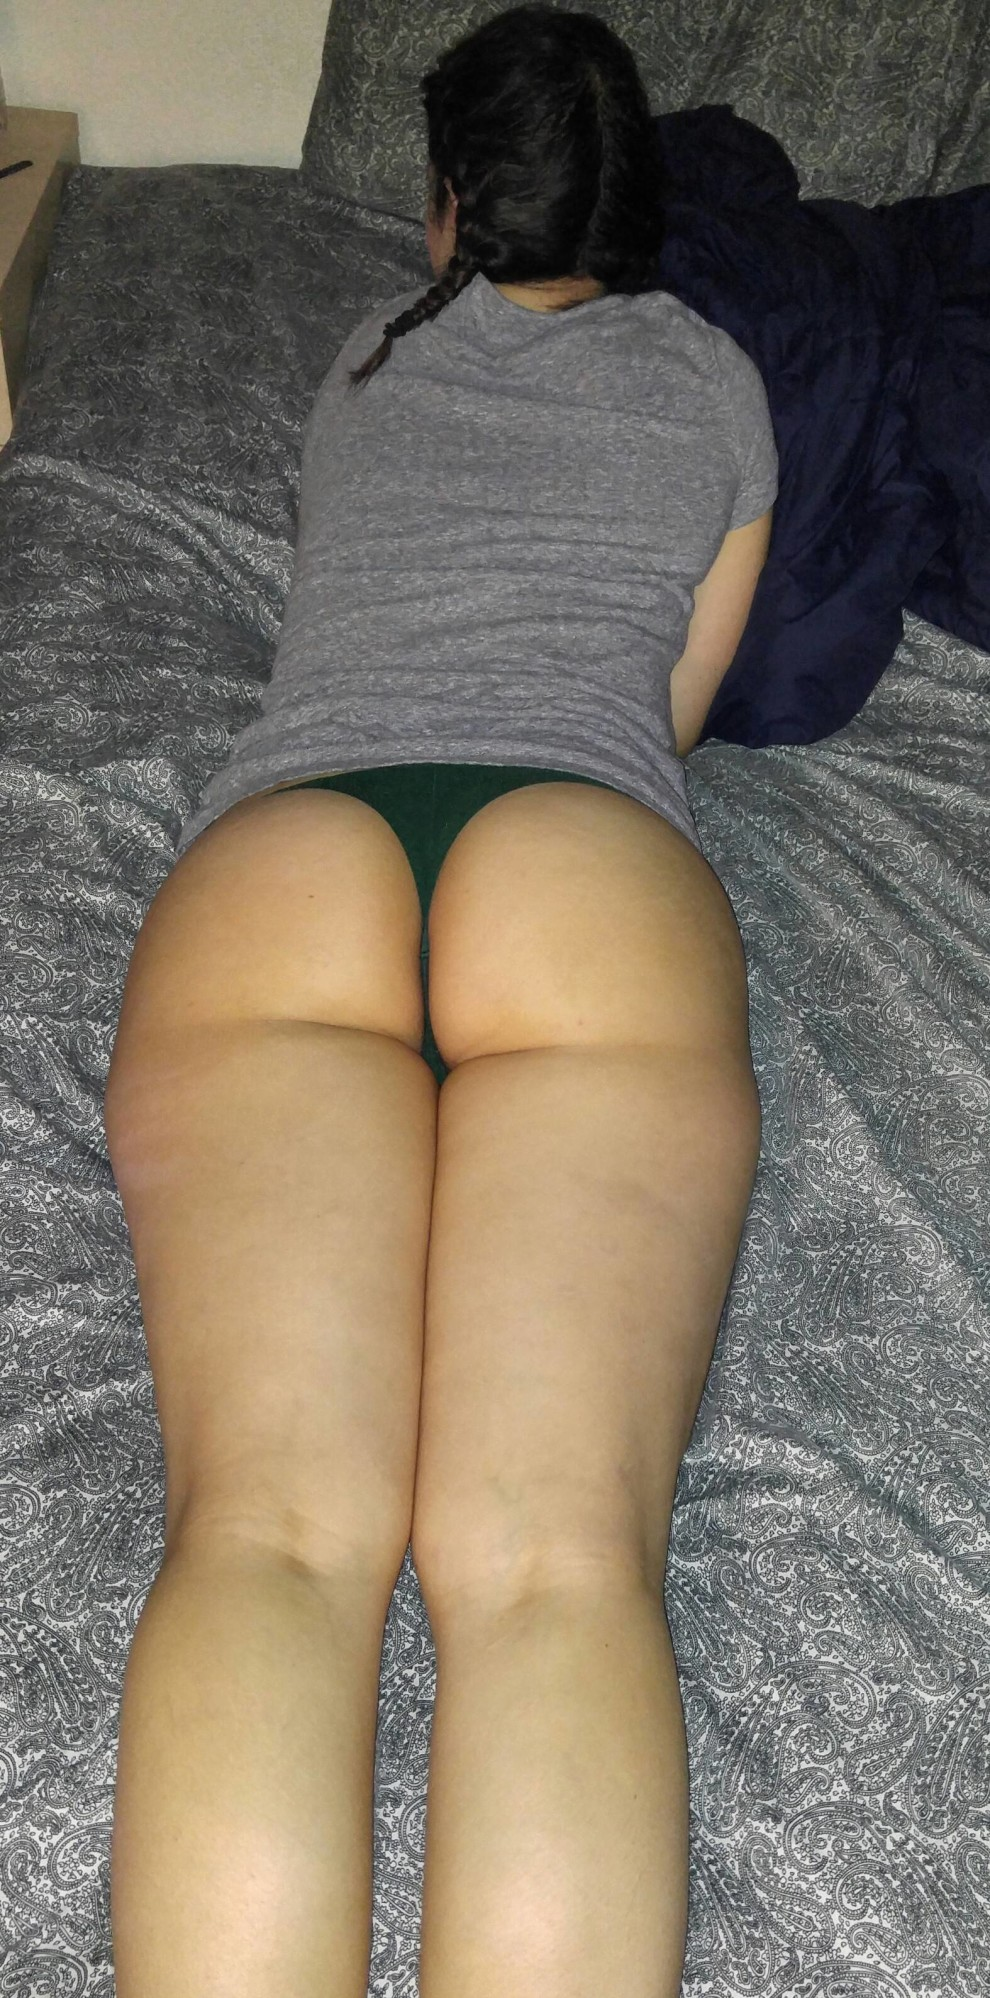 (f)ed him some booty for dinner. Treat your man right ladies.